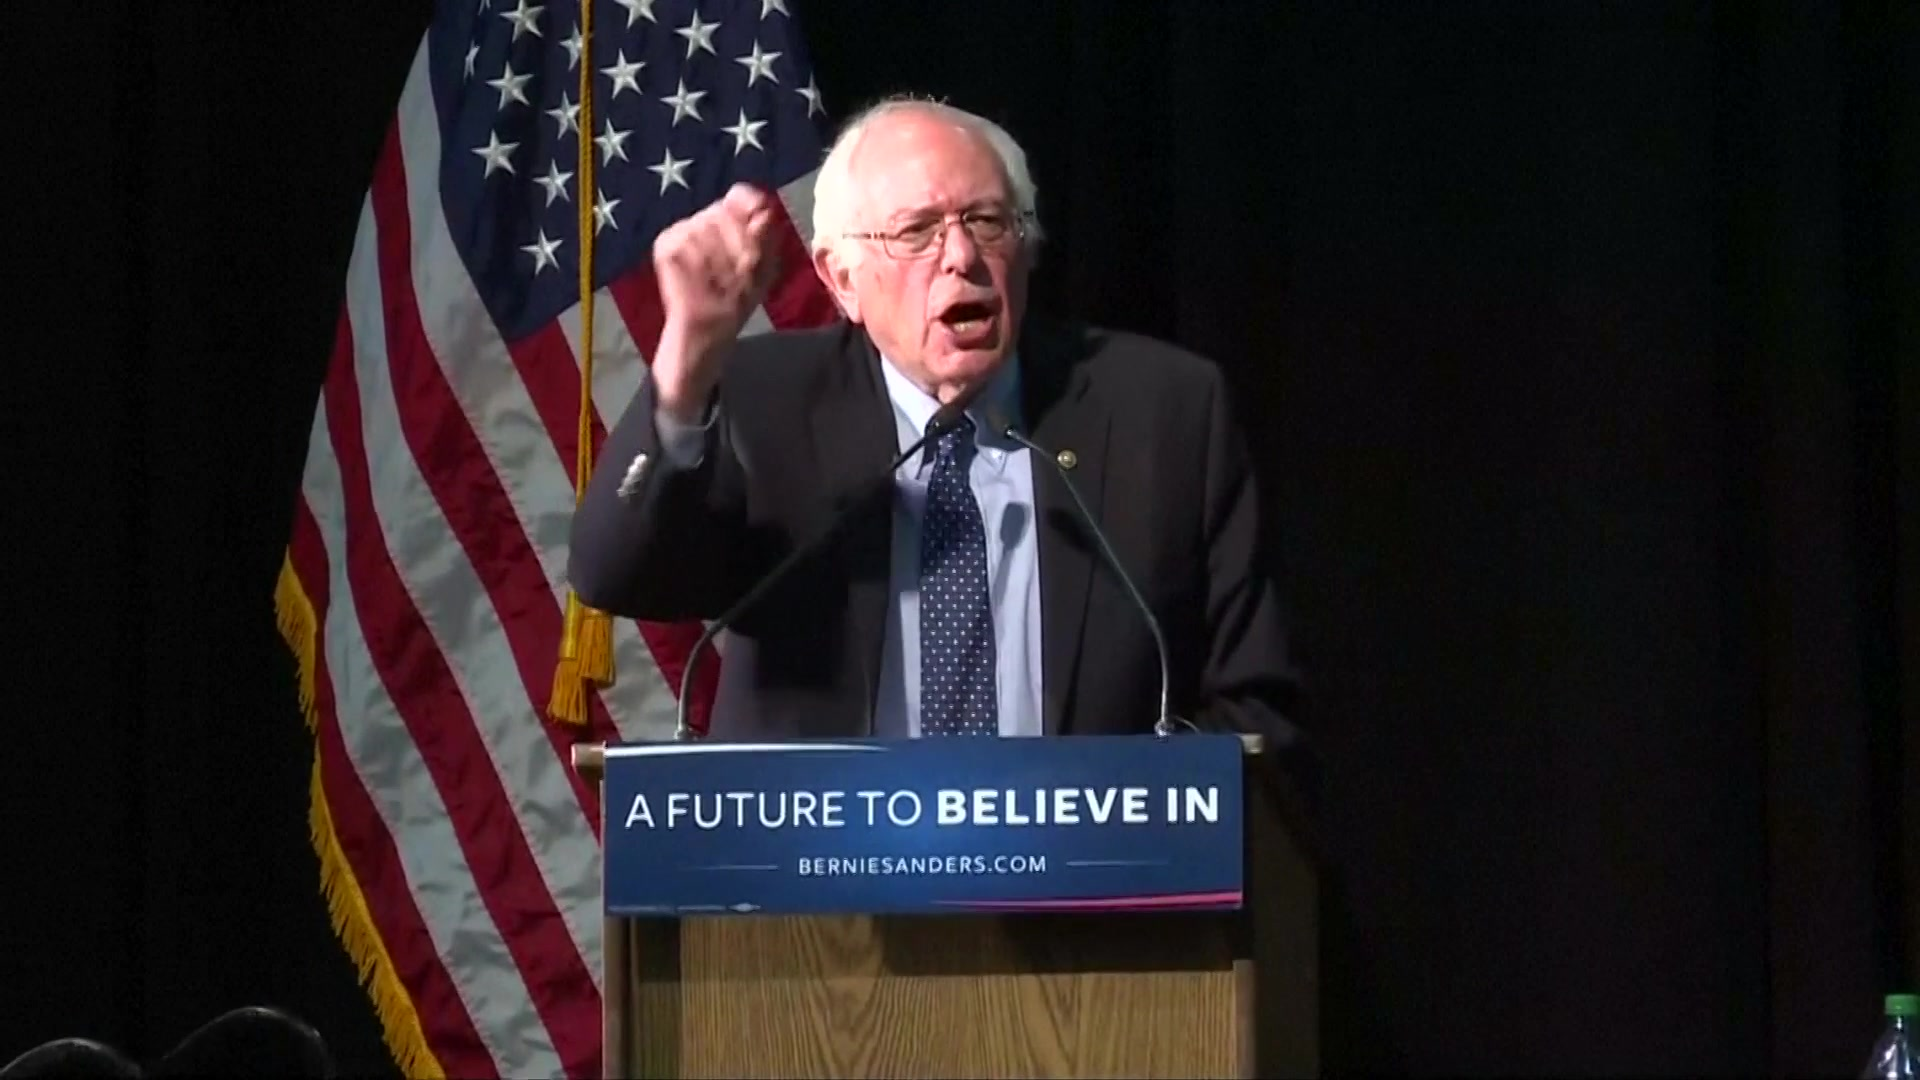 Sanders Repeats Call for Universal Health Coverage